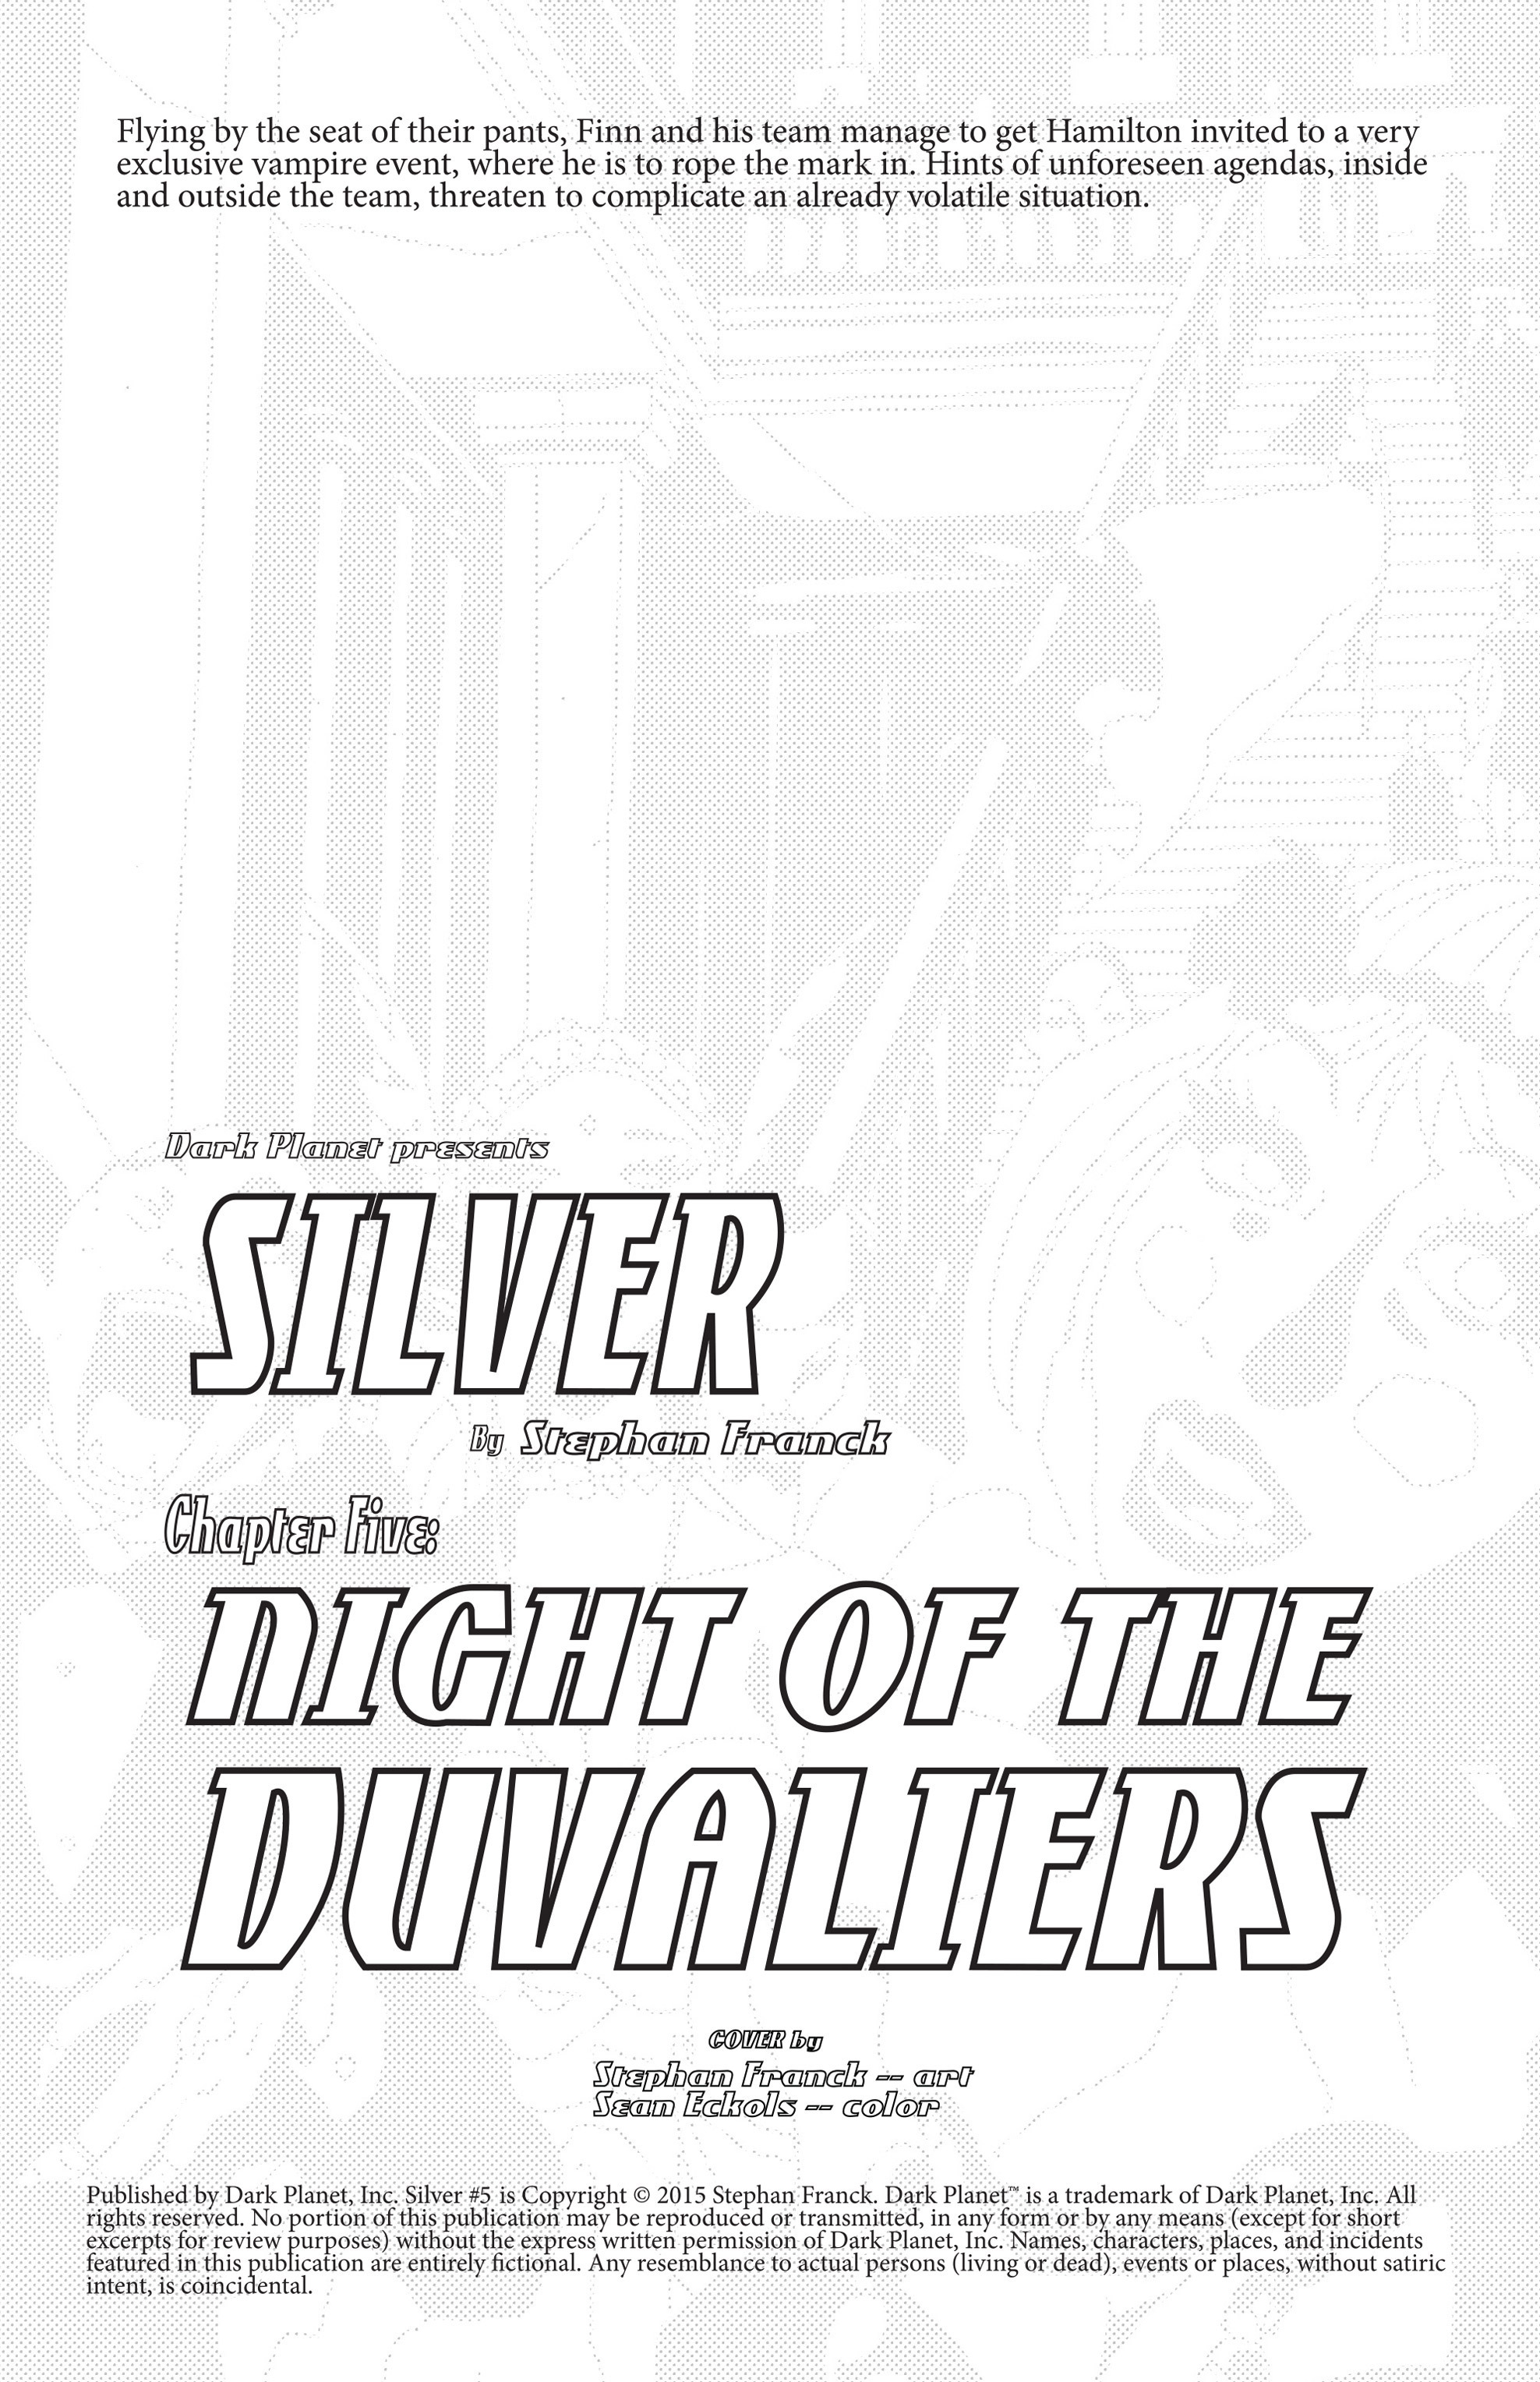 Read online Silver comic -  Issue #5 - 2